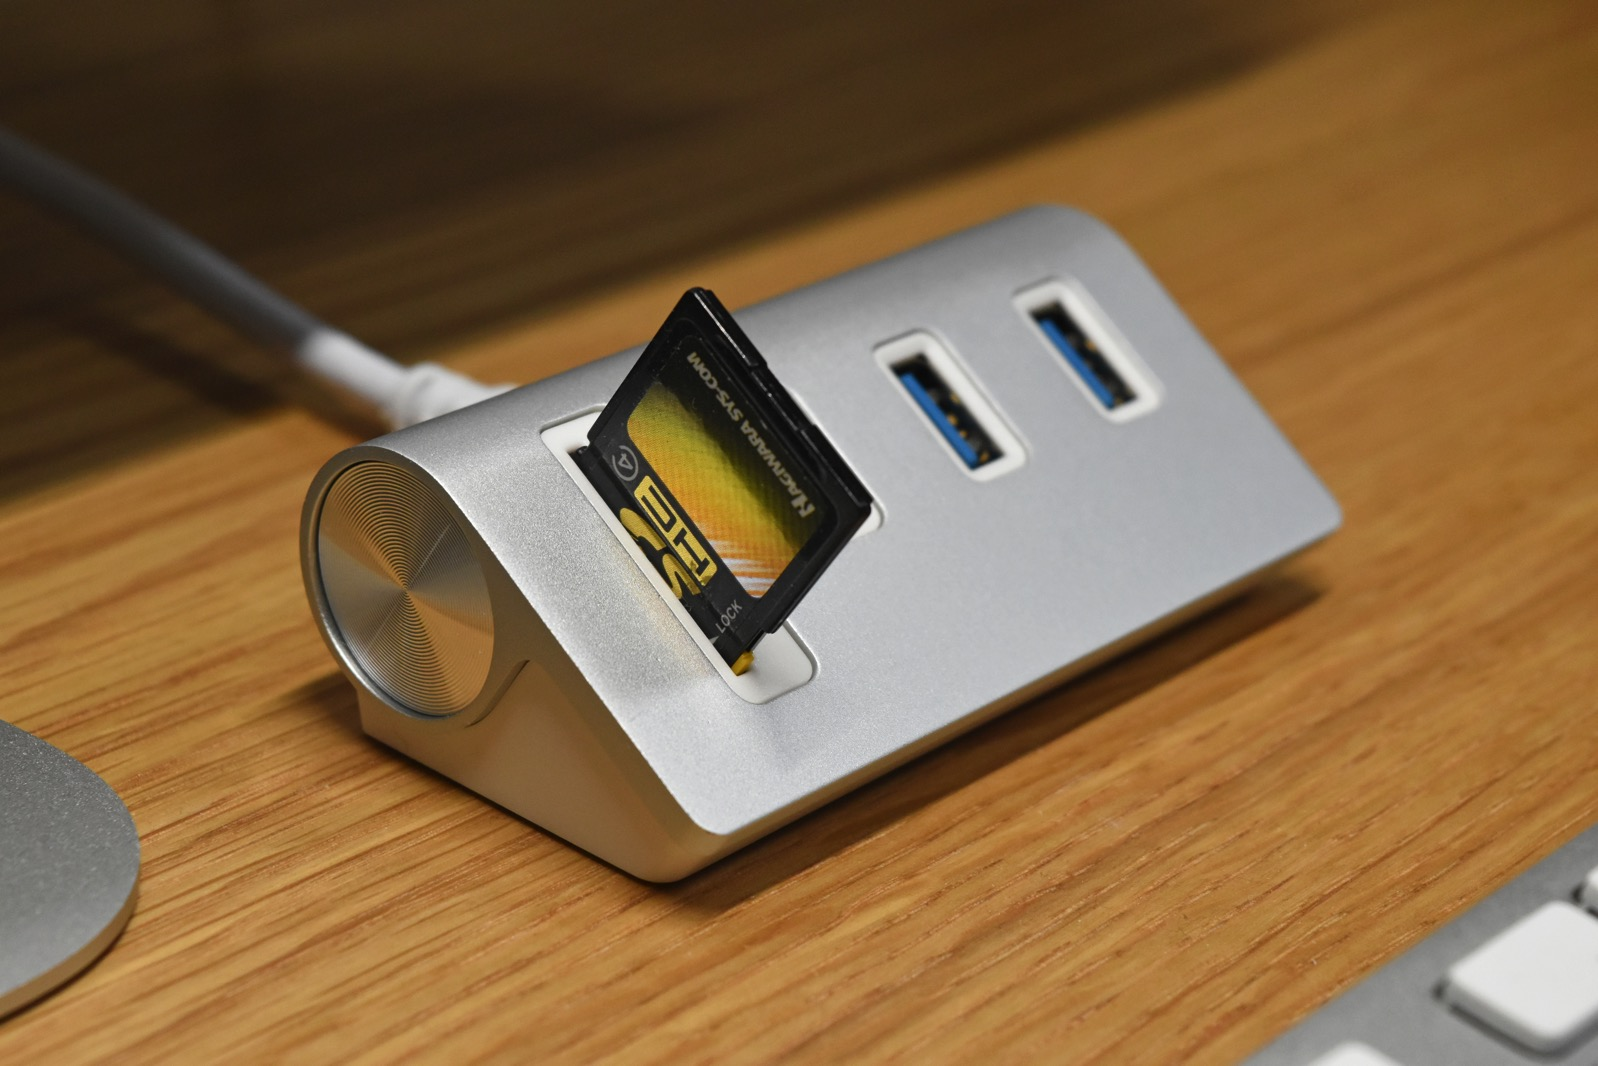 Cateck usb hub13